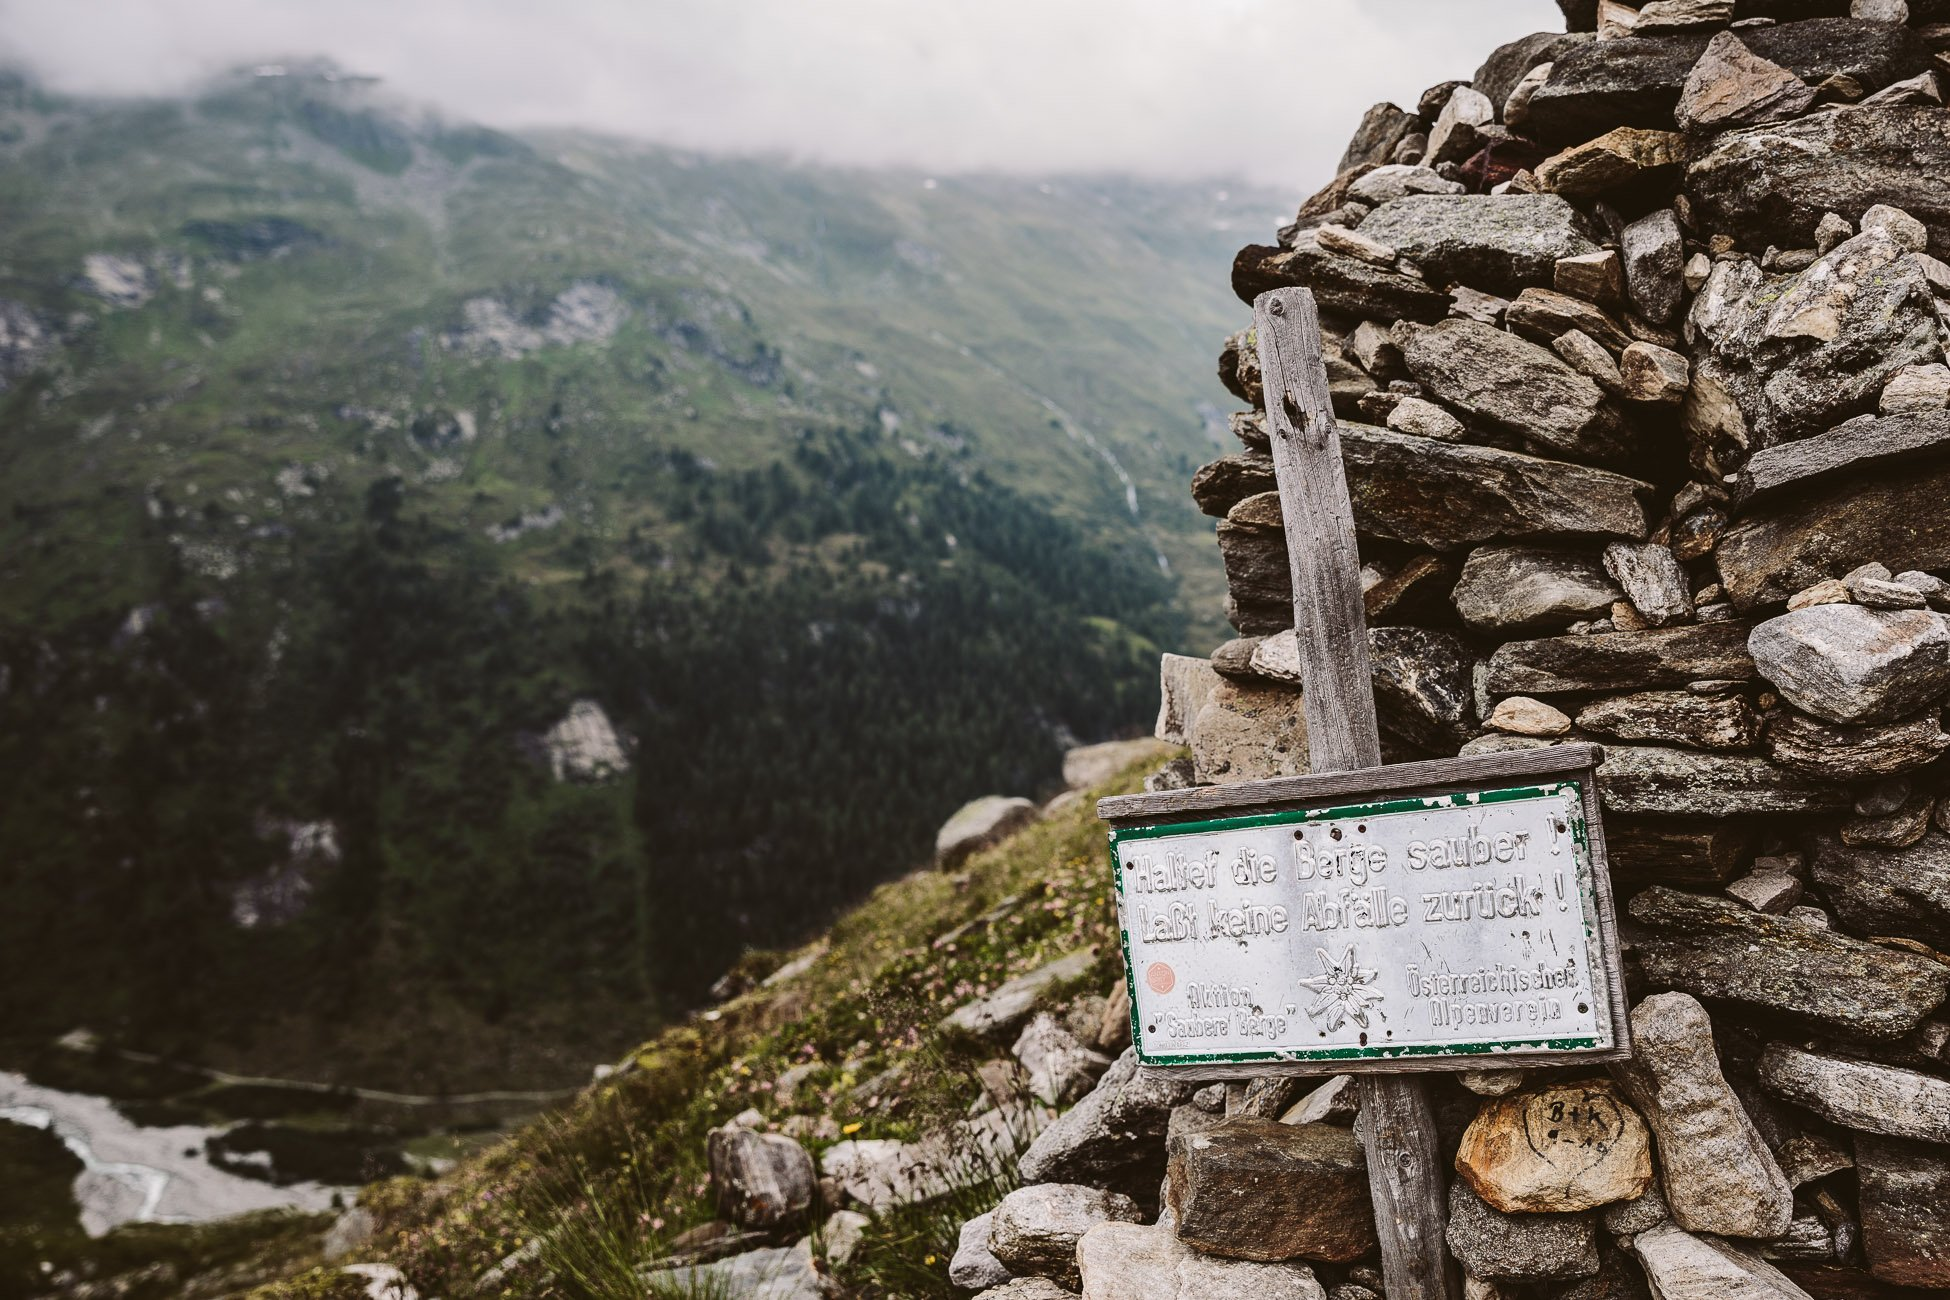 Sign at National Park Hohe Tauern